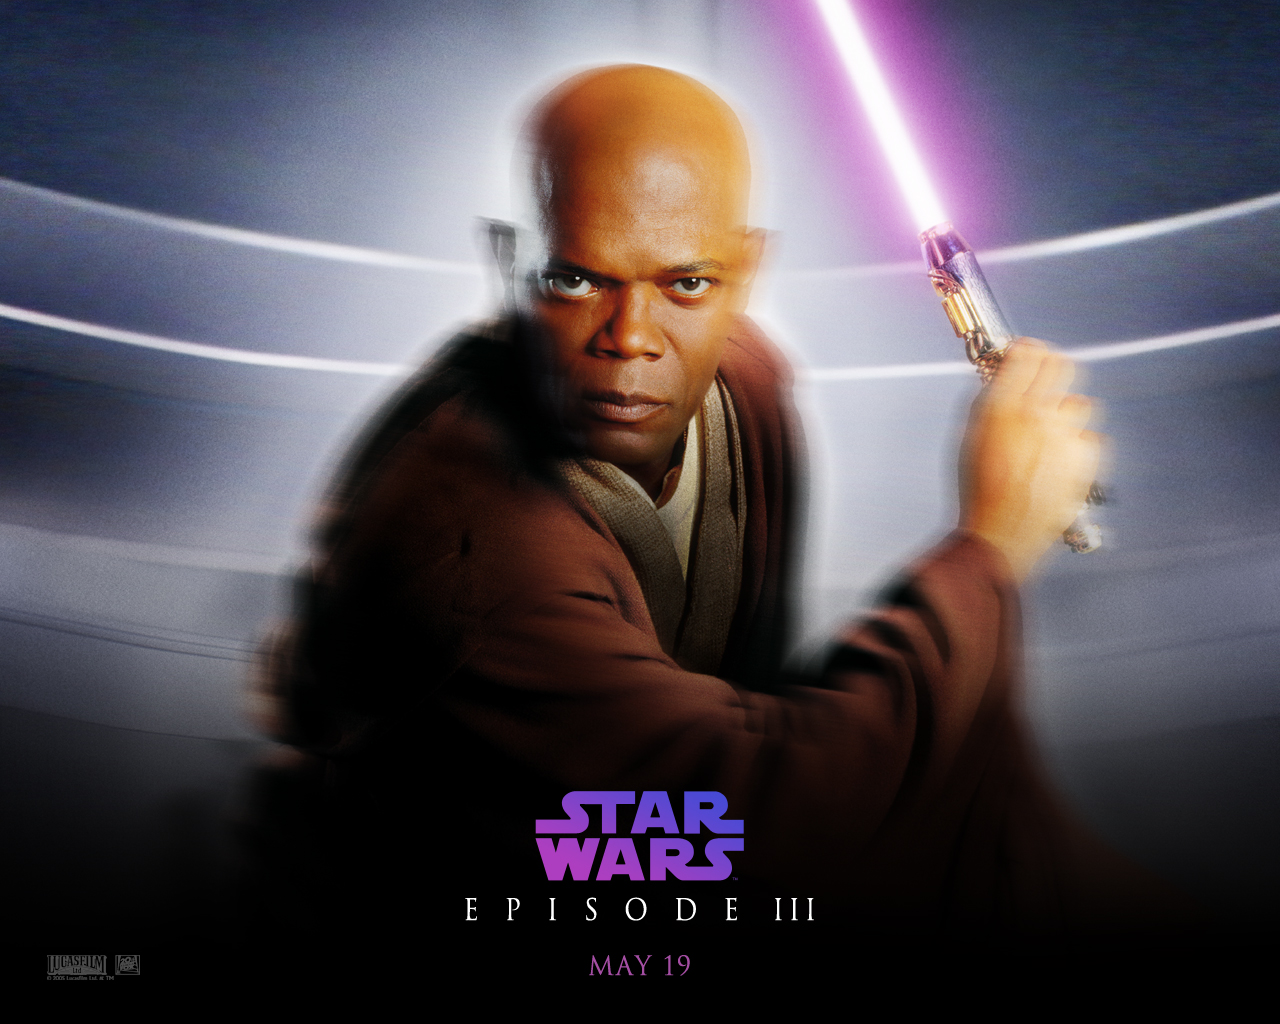 Wallpaper Maitre Windu Star Wars